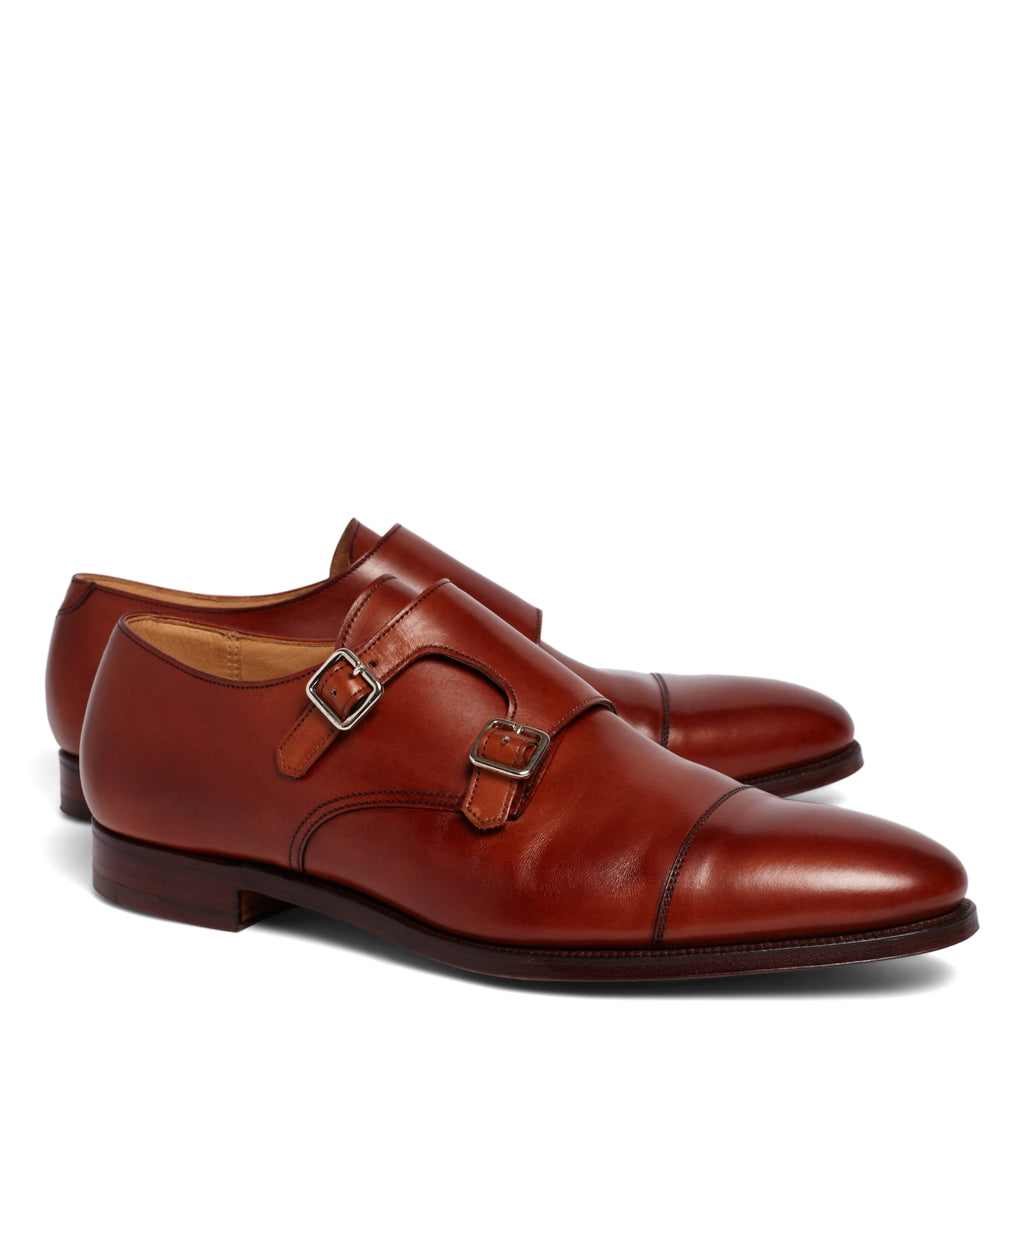 Tan Leather Formal Double Monk Strap Buckle Shoes for Men with Leather Sole. Goodyear Welted Construction Available.